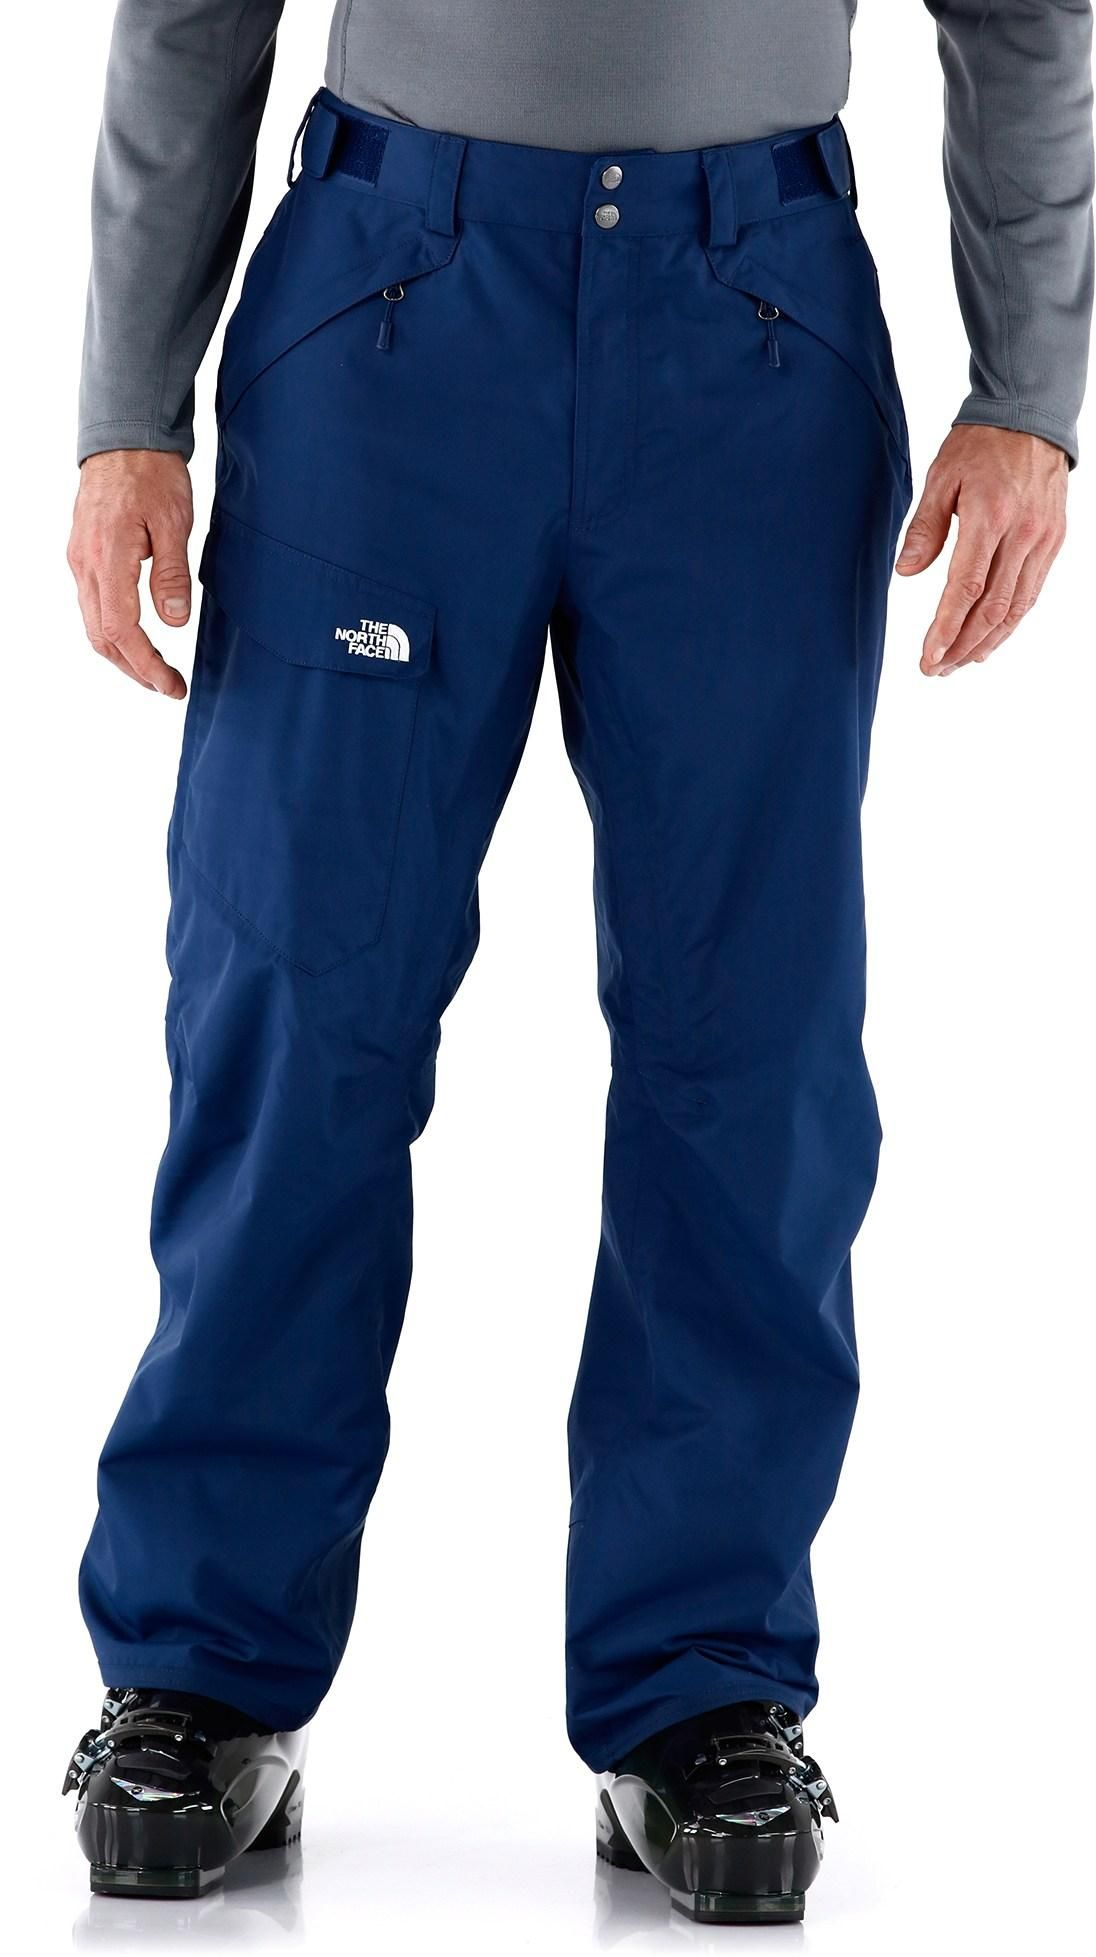 d57f4b48299e The North Face Freedom shell pants for men supply waterproof protection and  a relaxed fit.  REIGifts